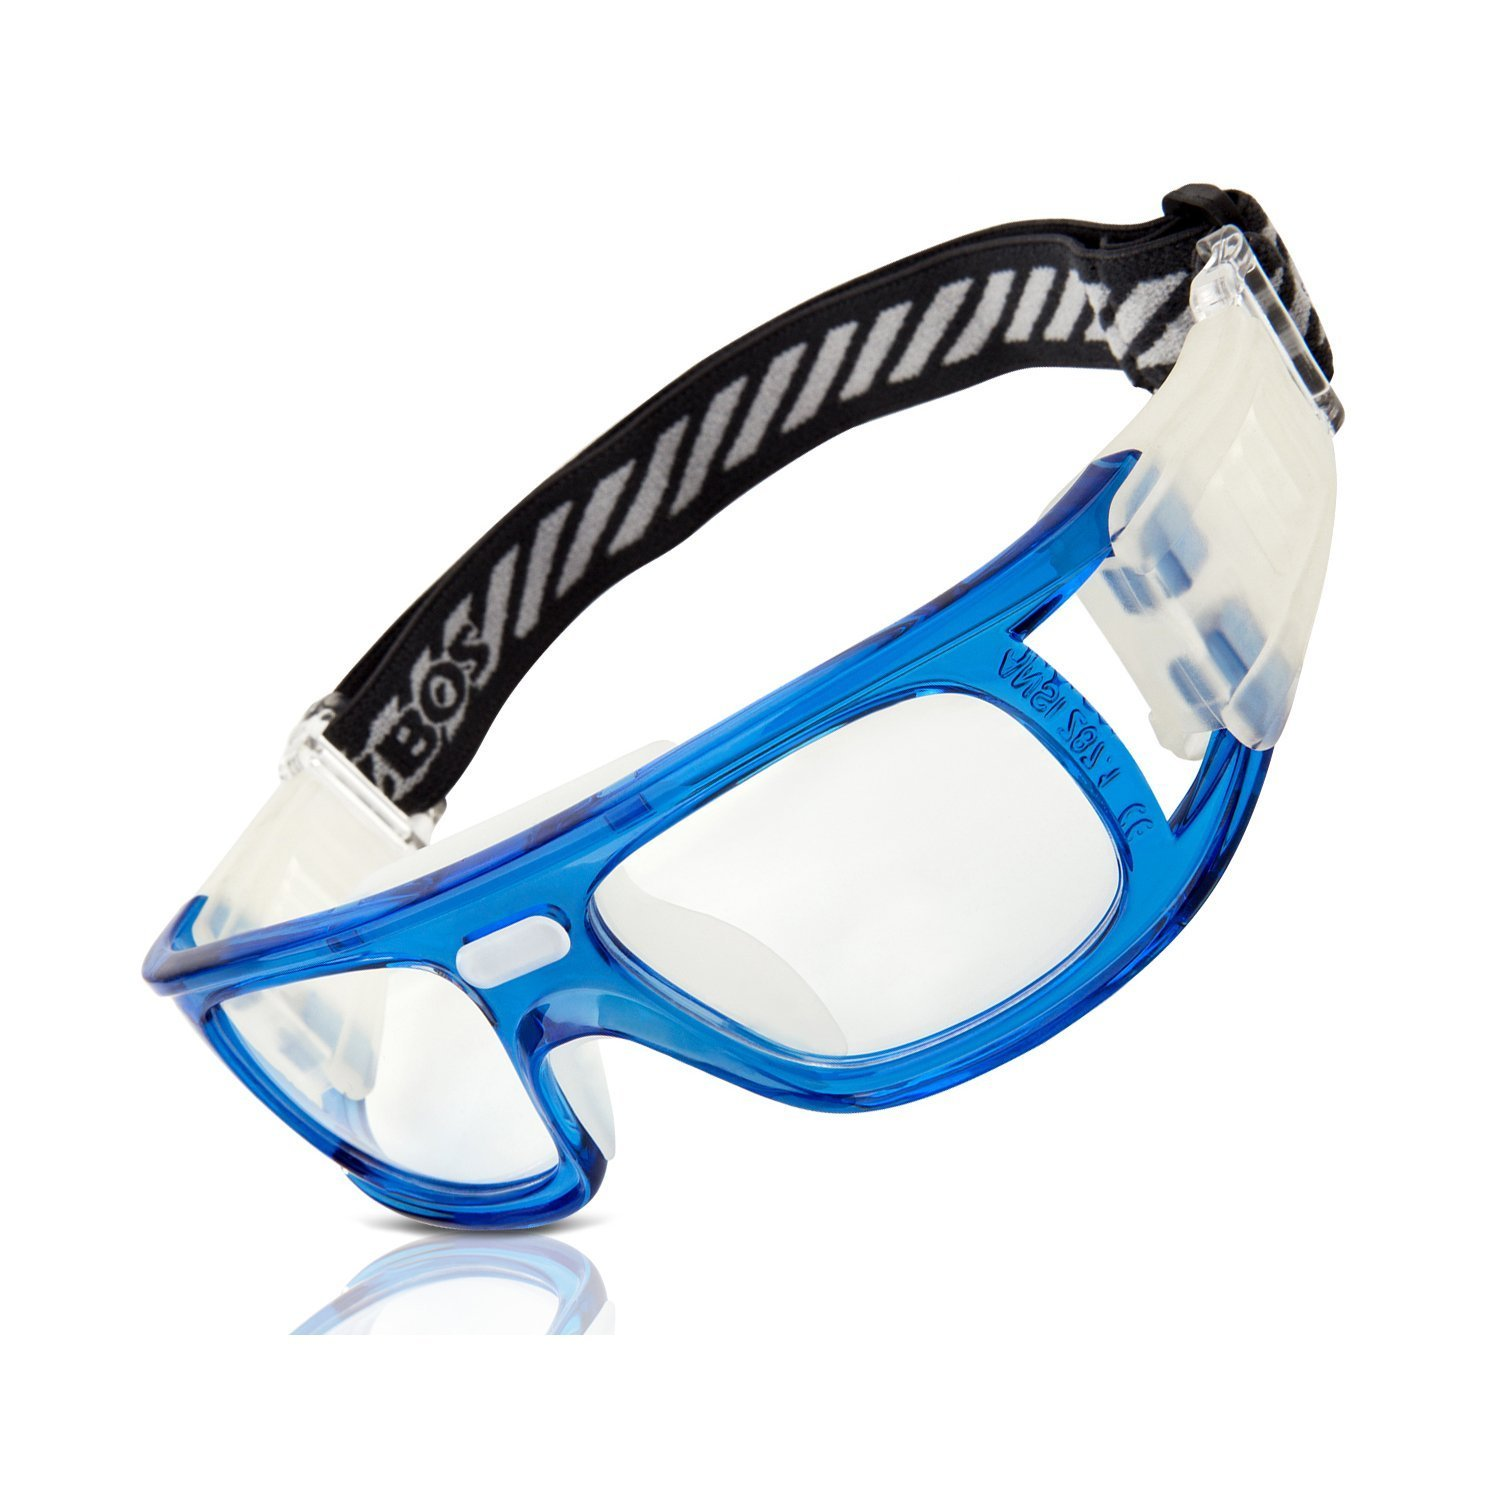 804ce745bb65 Get Quotations · RIVBOS® 1813 Safety Sports Glasses Protective Sports  Goggles with Strap and Portable Case for Basketball